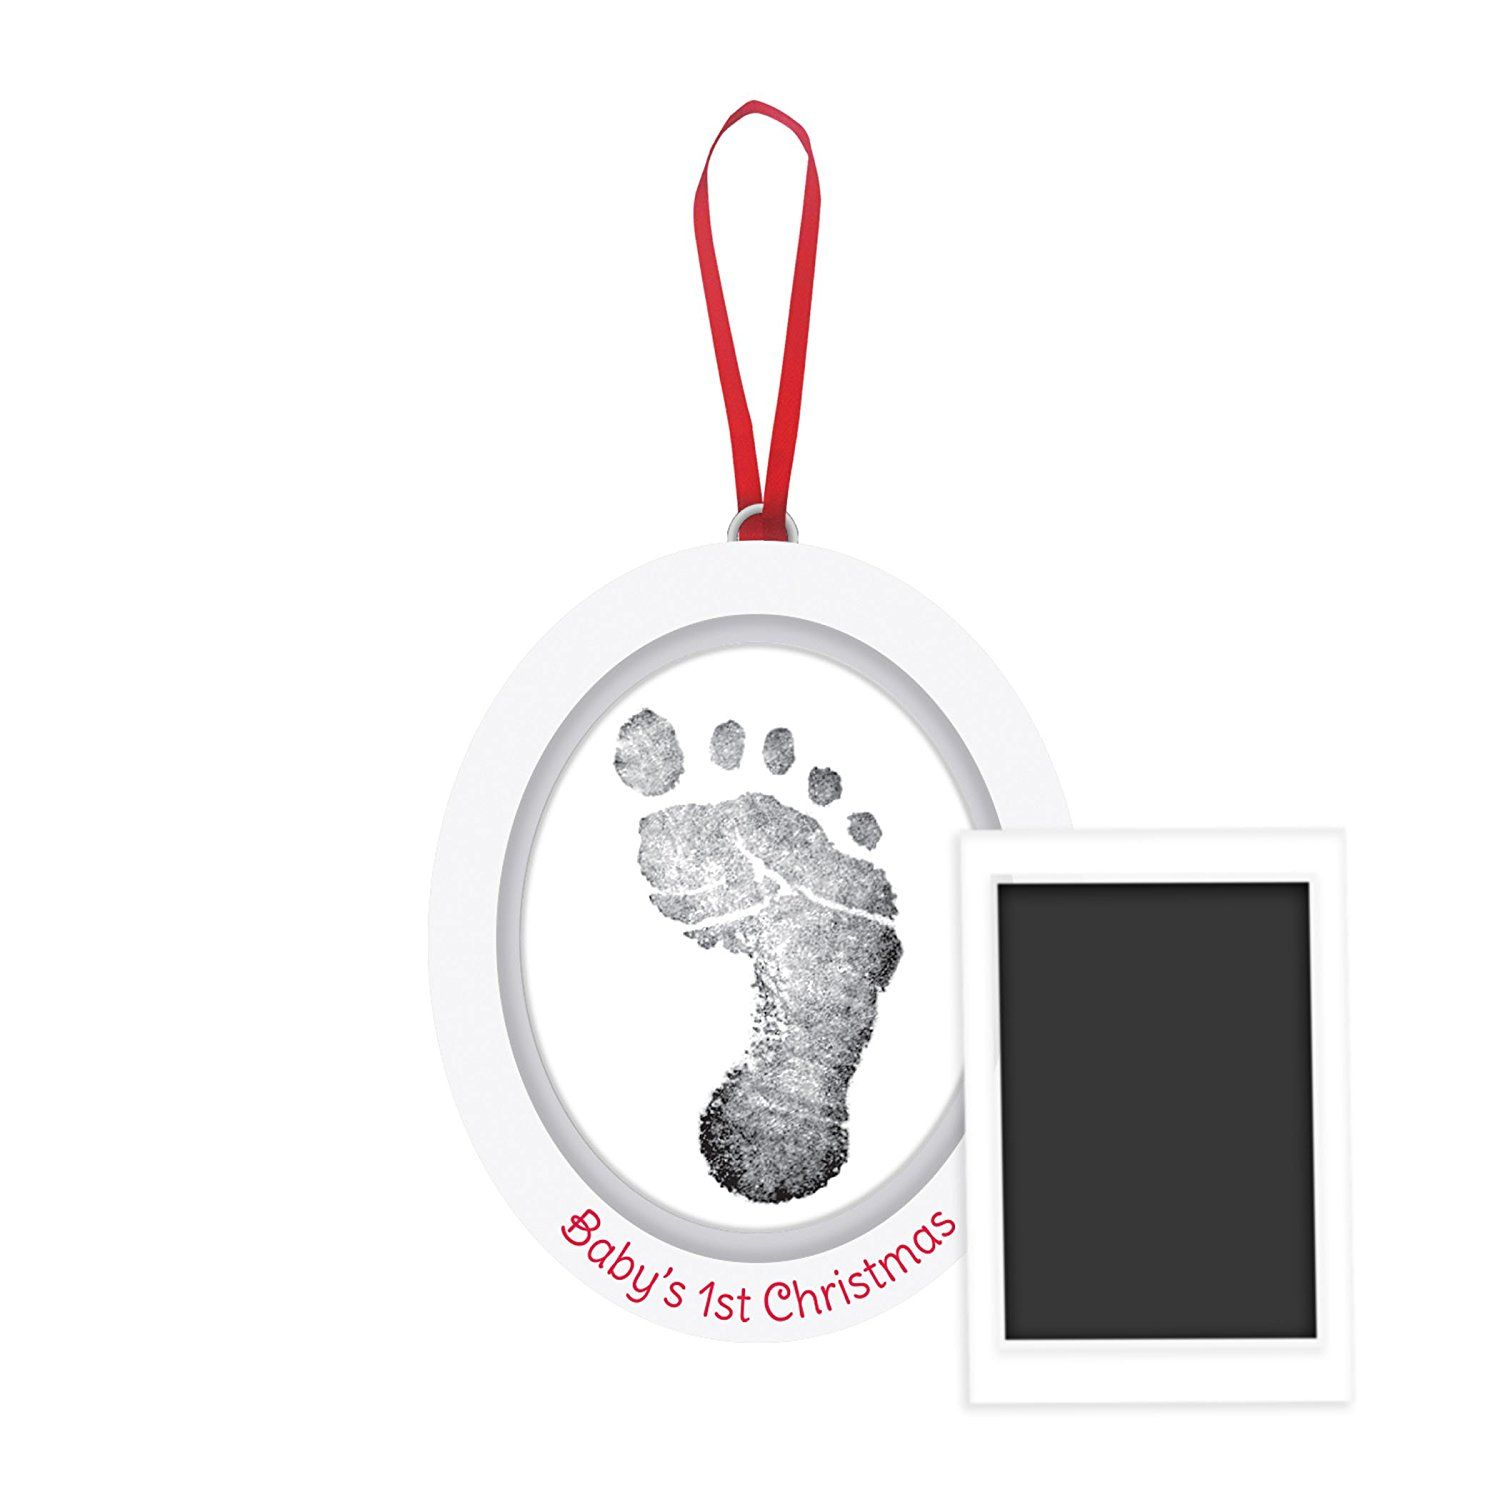 Pearhead Babyprints Newborn Baby Handprint Or Footprint Christmas Frame with Clean Touch Ink Pad Red Makes A Perfect Holiday Gift